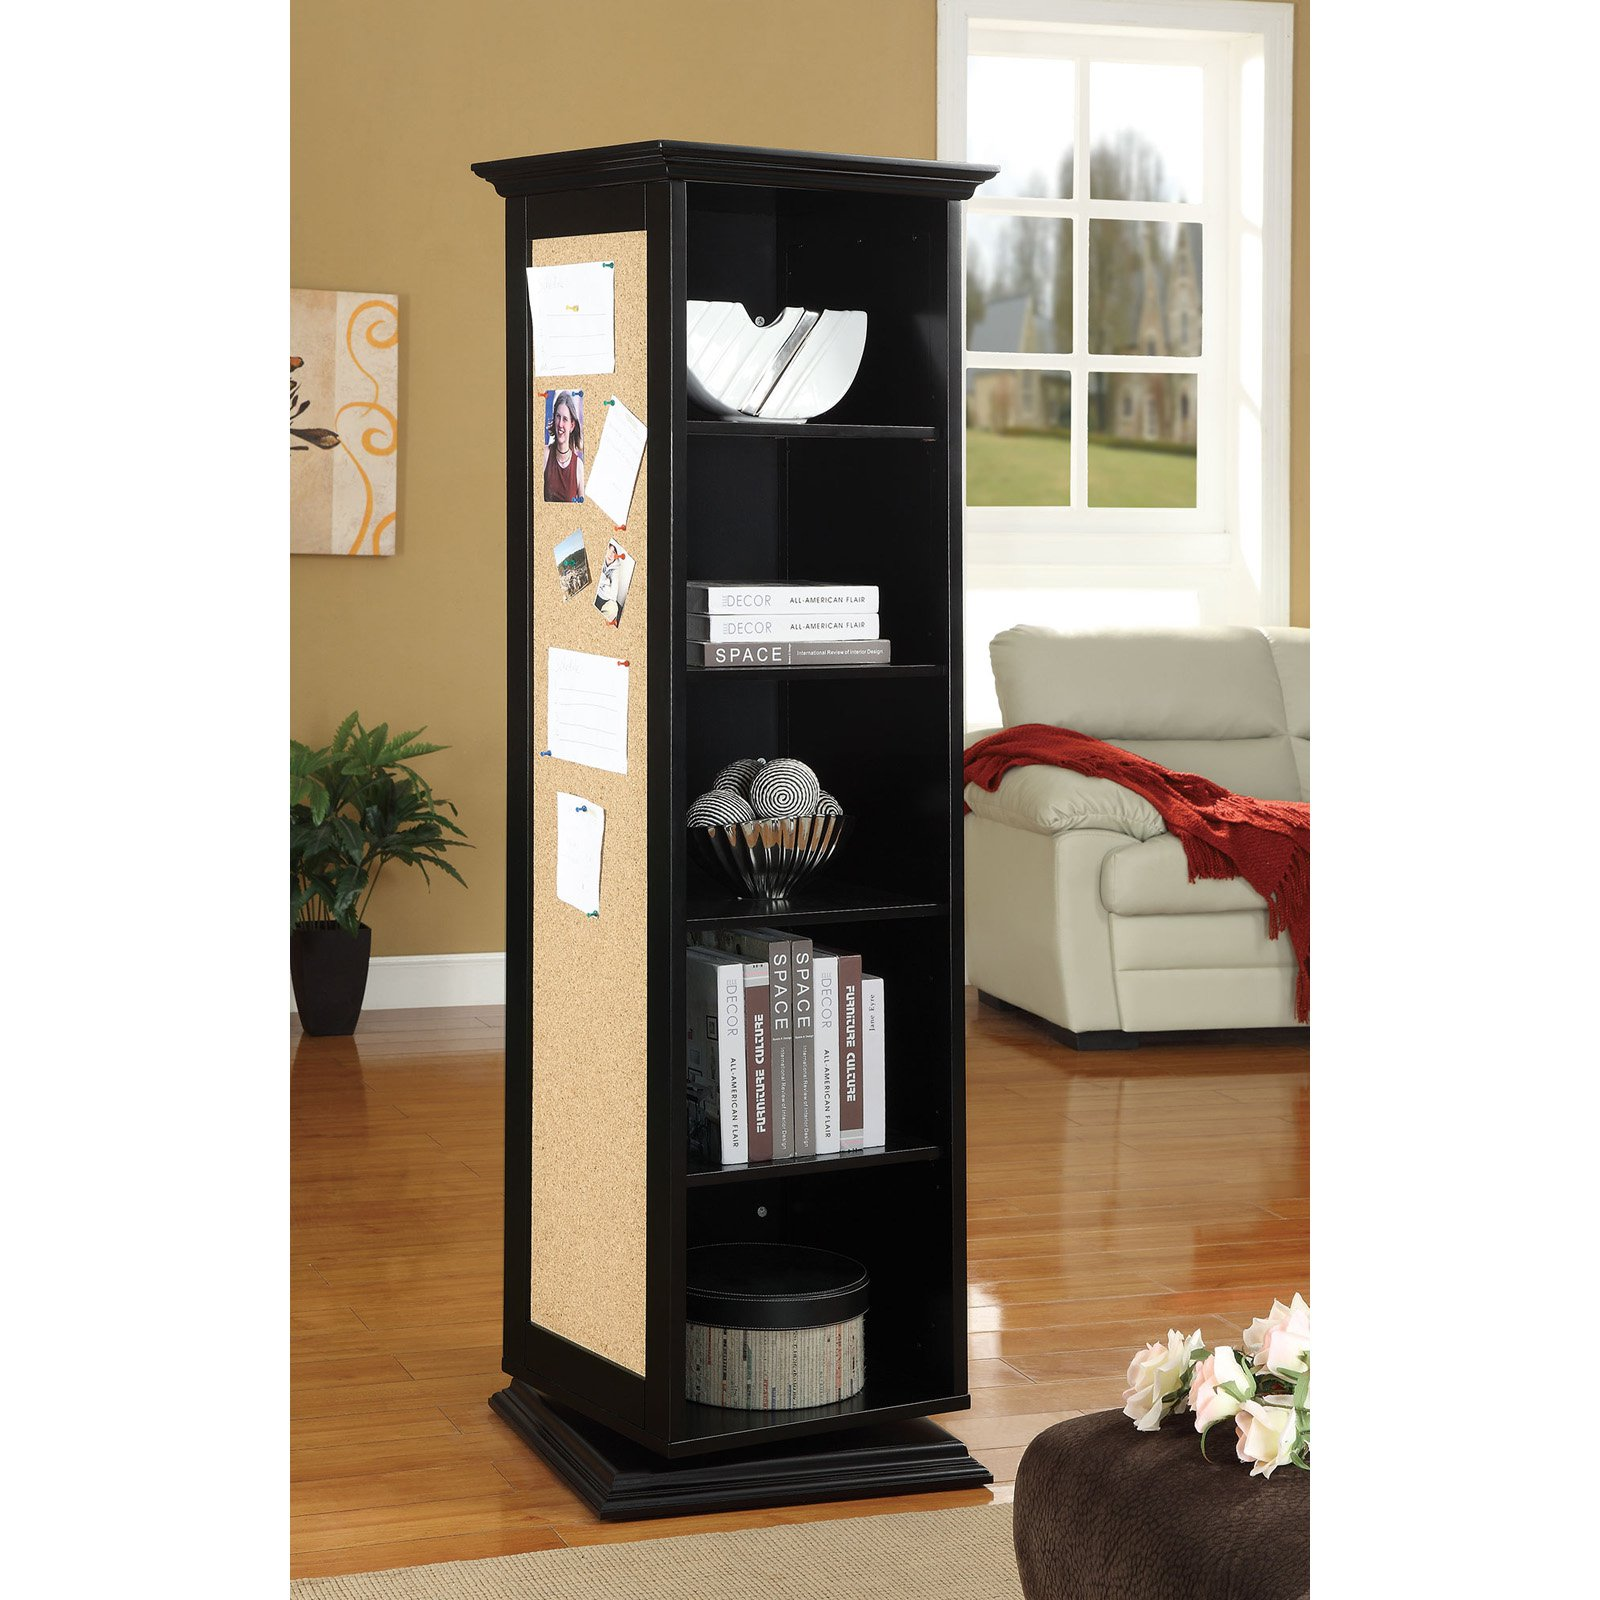 Coaster Company Swivel Cabinet, Black